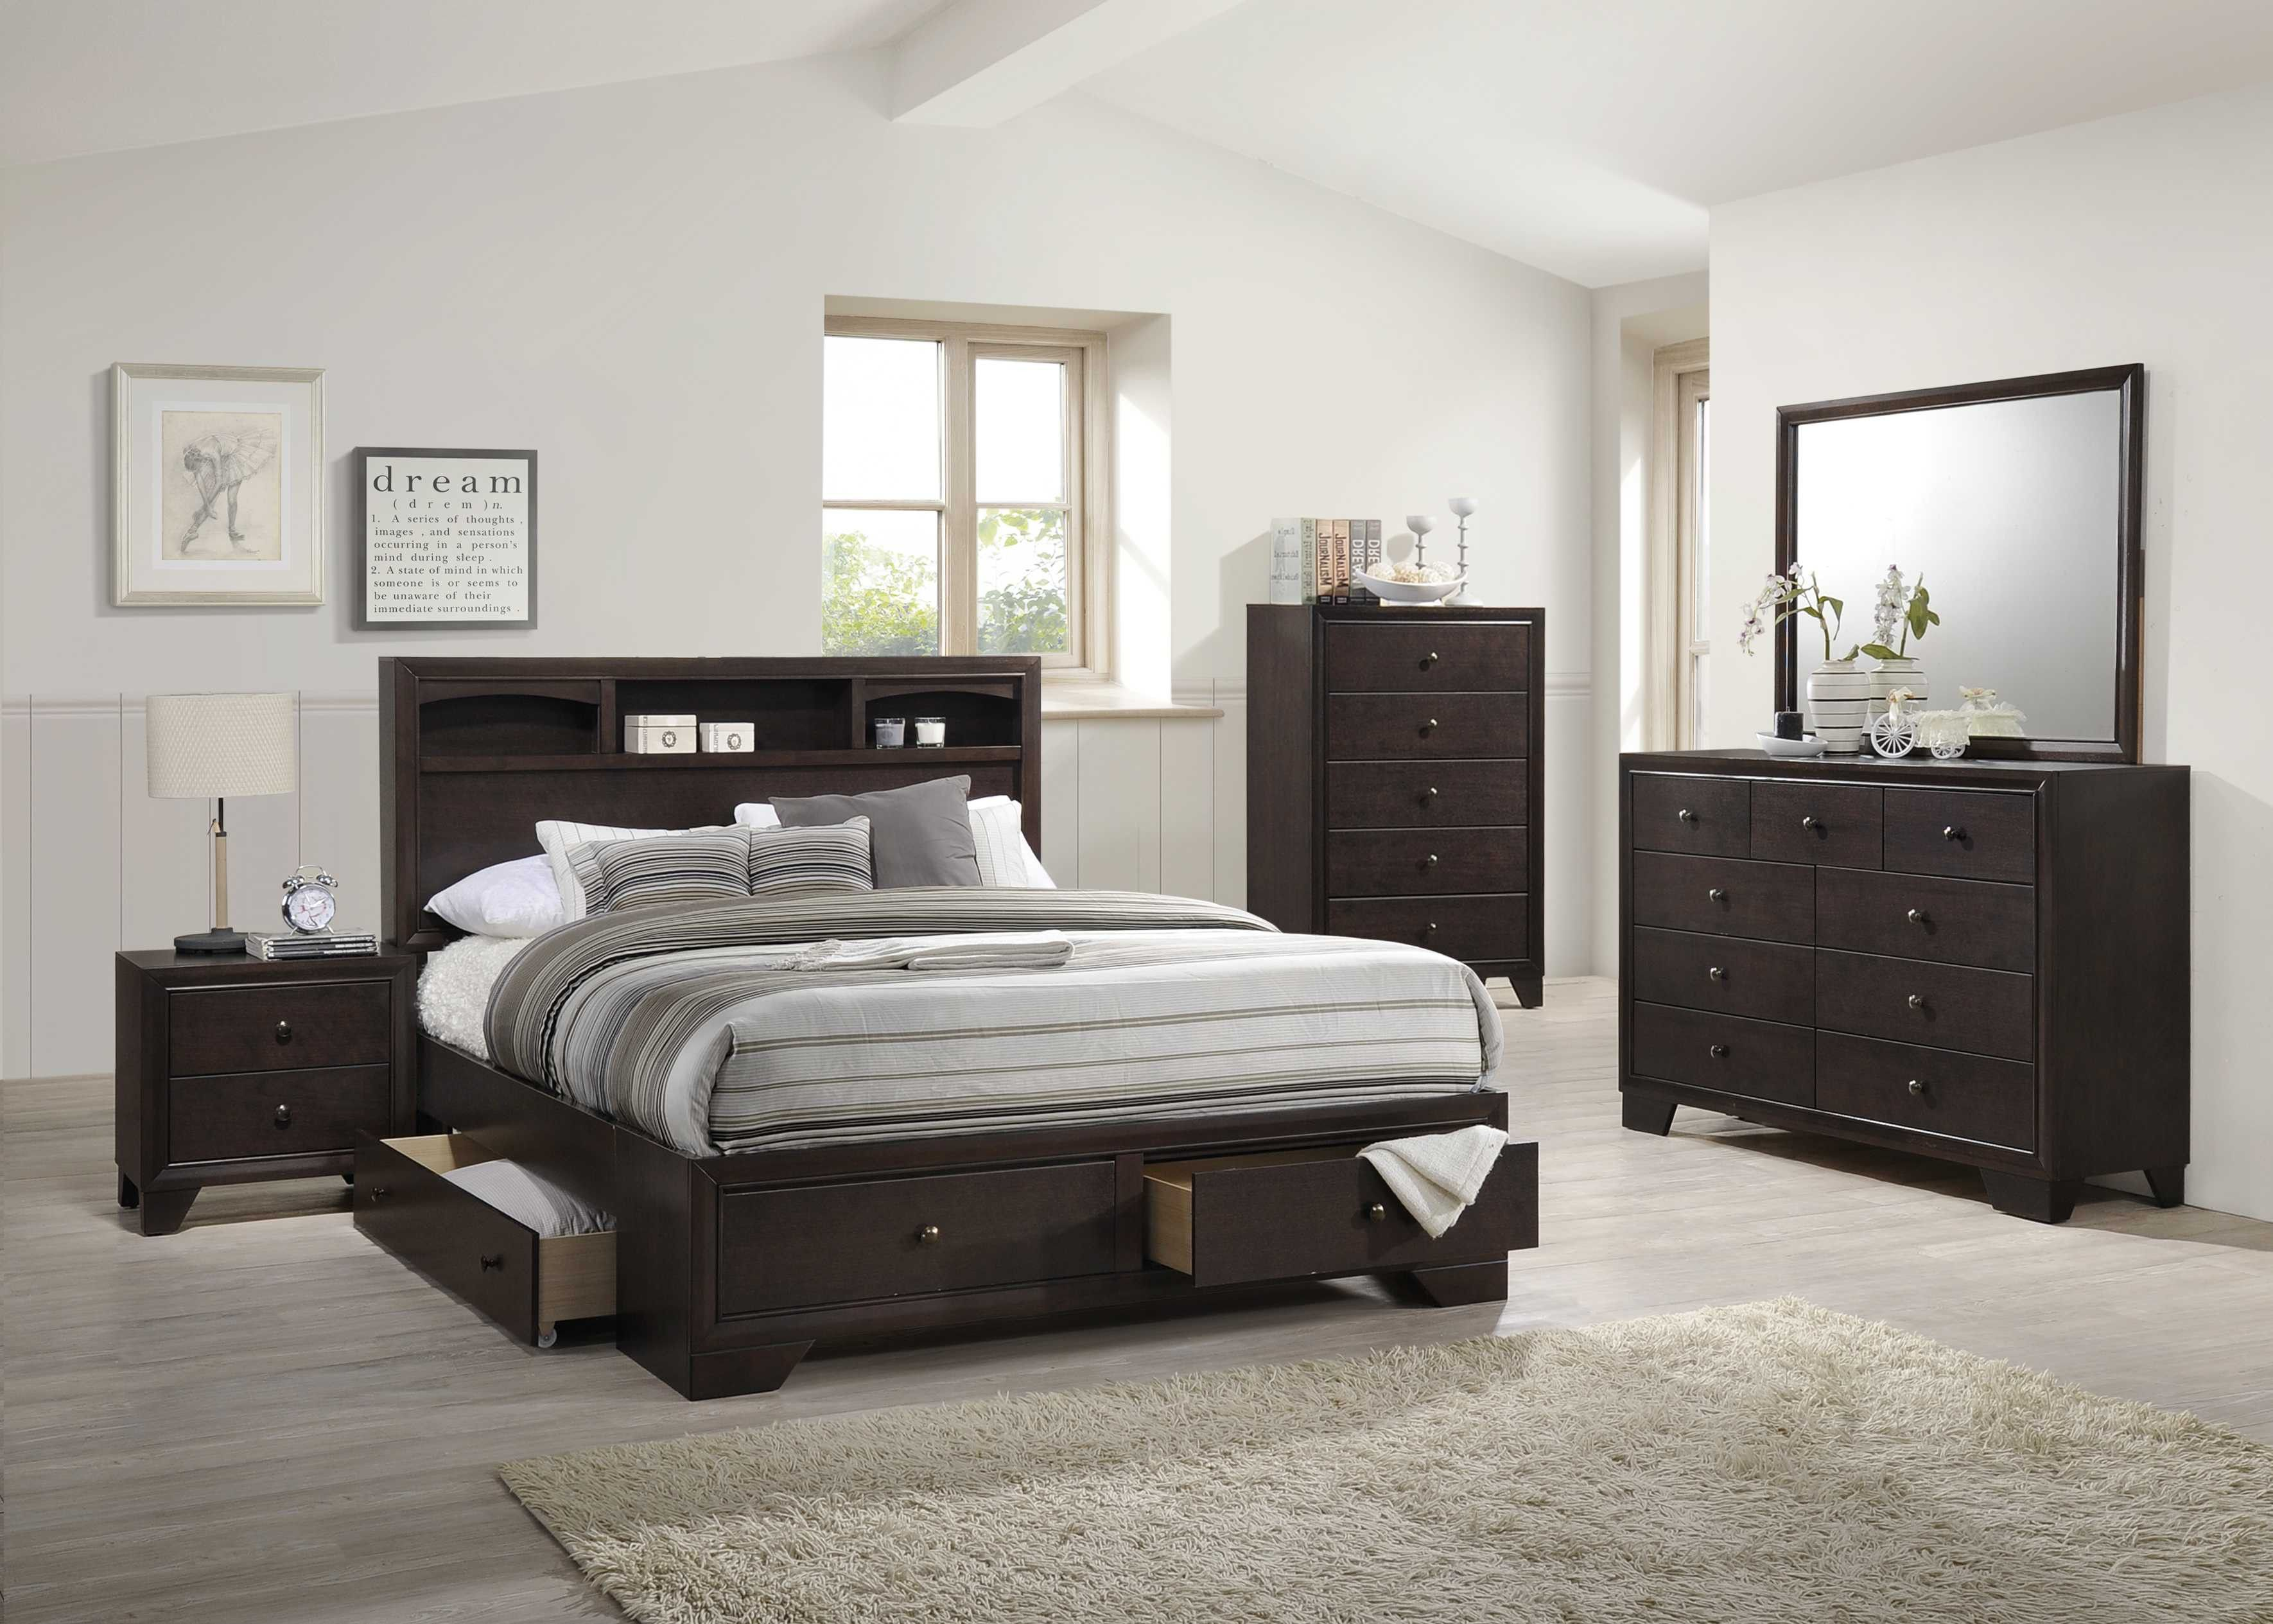 beds upholstered bed four queen storage with fabric underneath frame exclusive drawers